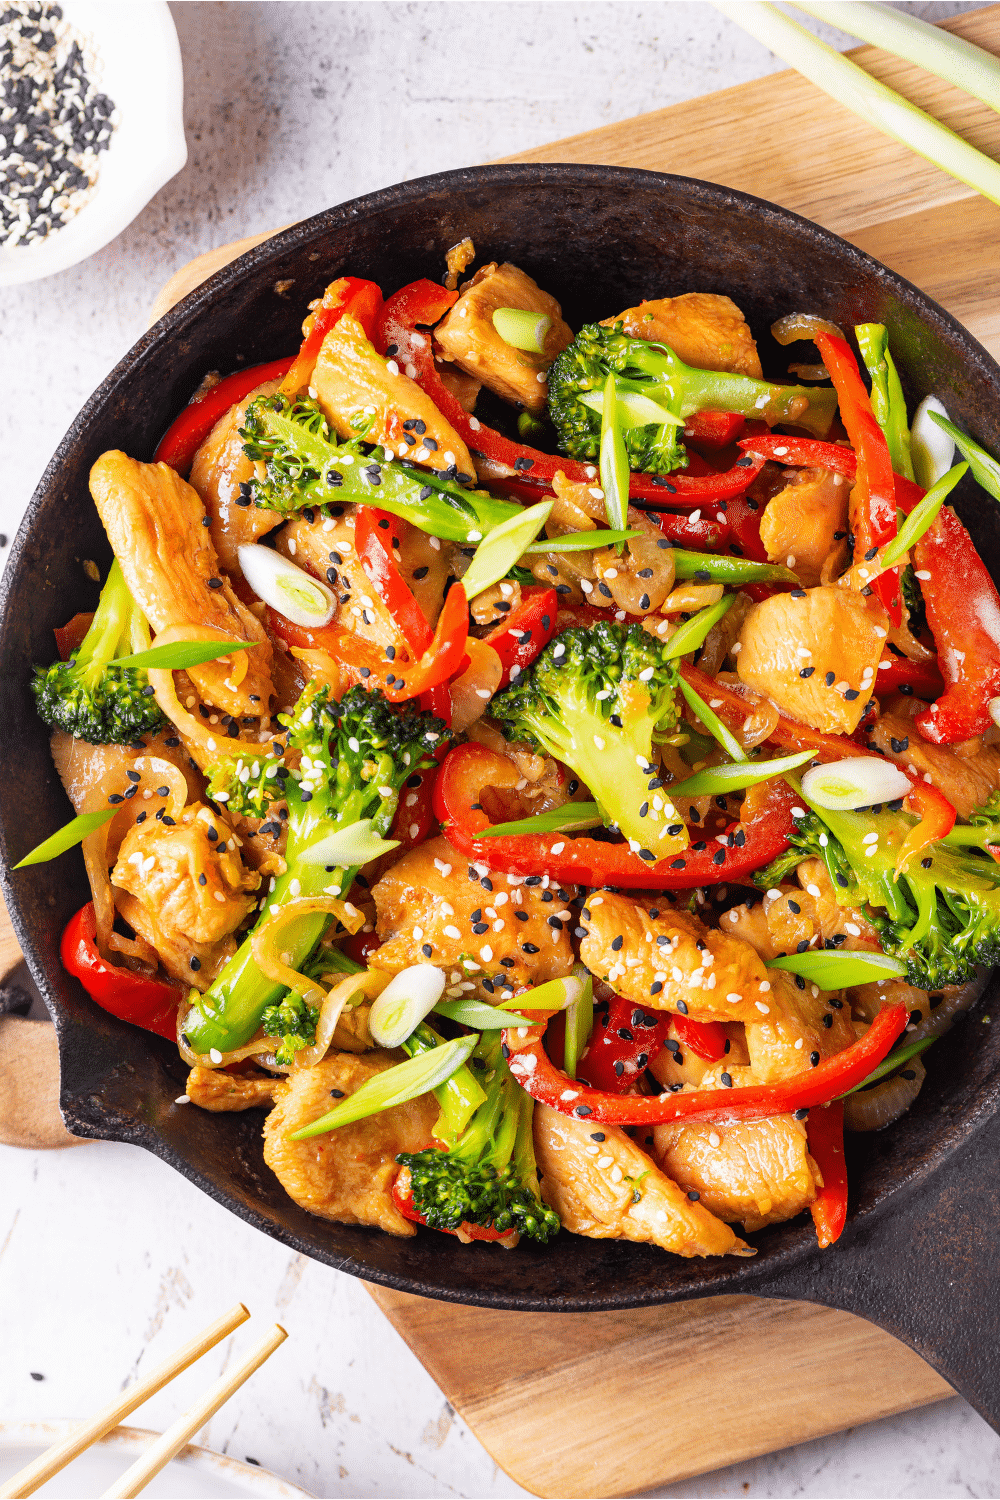 A skillet filled with keto chicken stir fry. The skillet has broccoli, red peppers, chicken, and onions in it covered in a keto stir fry sauce. The skillet is on a wooden cutting board on a white table.